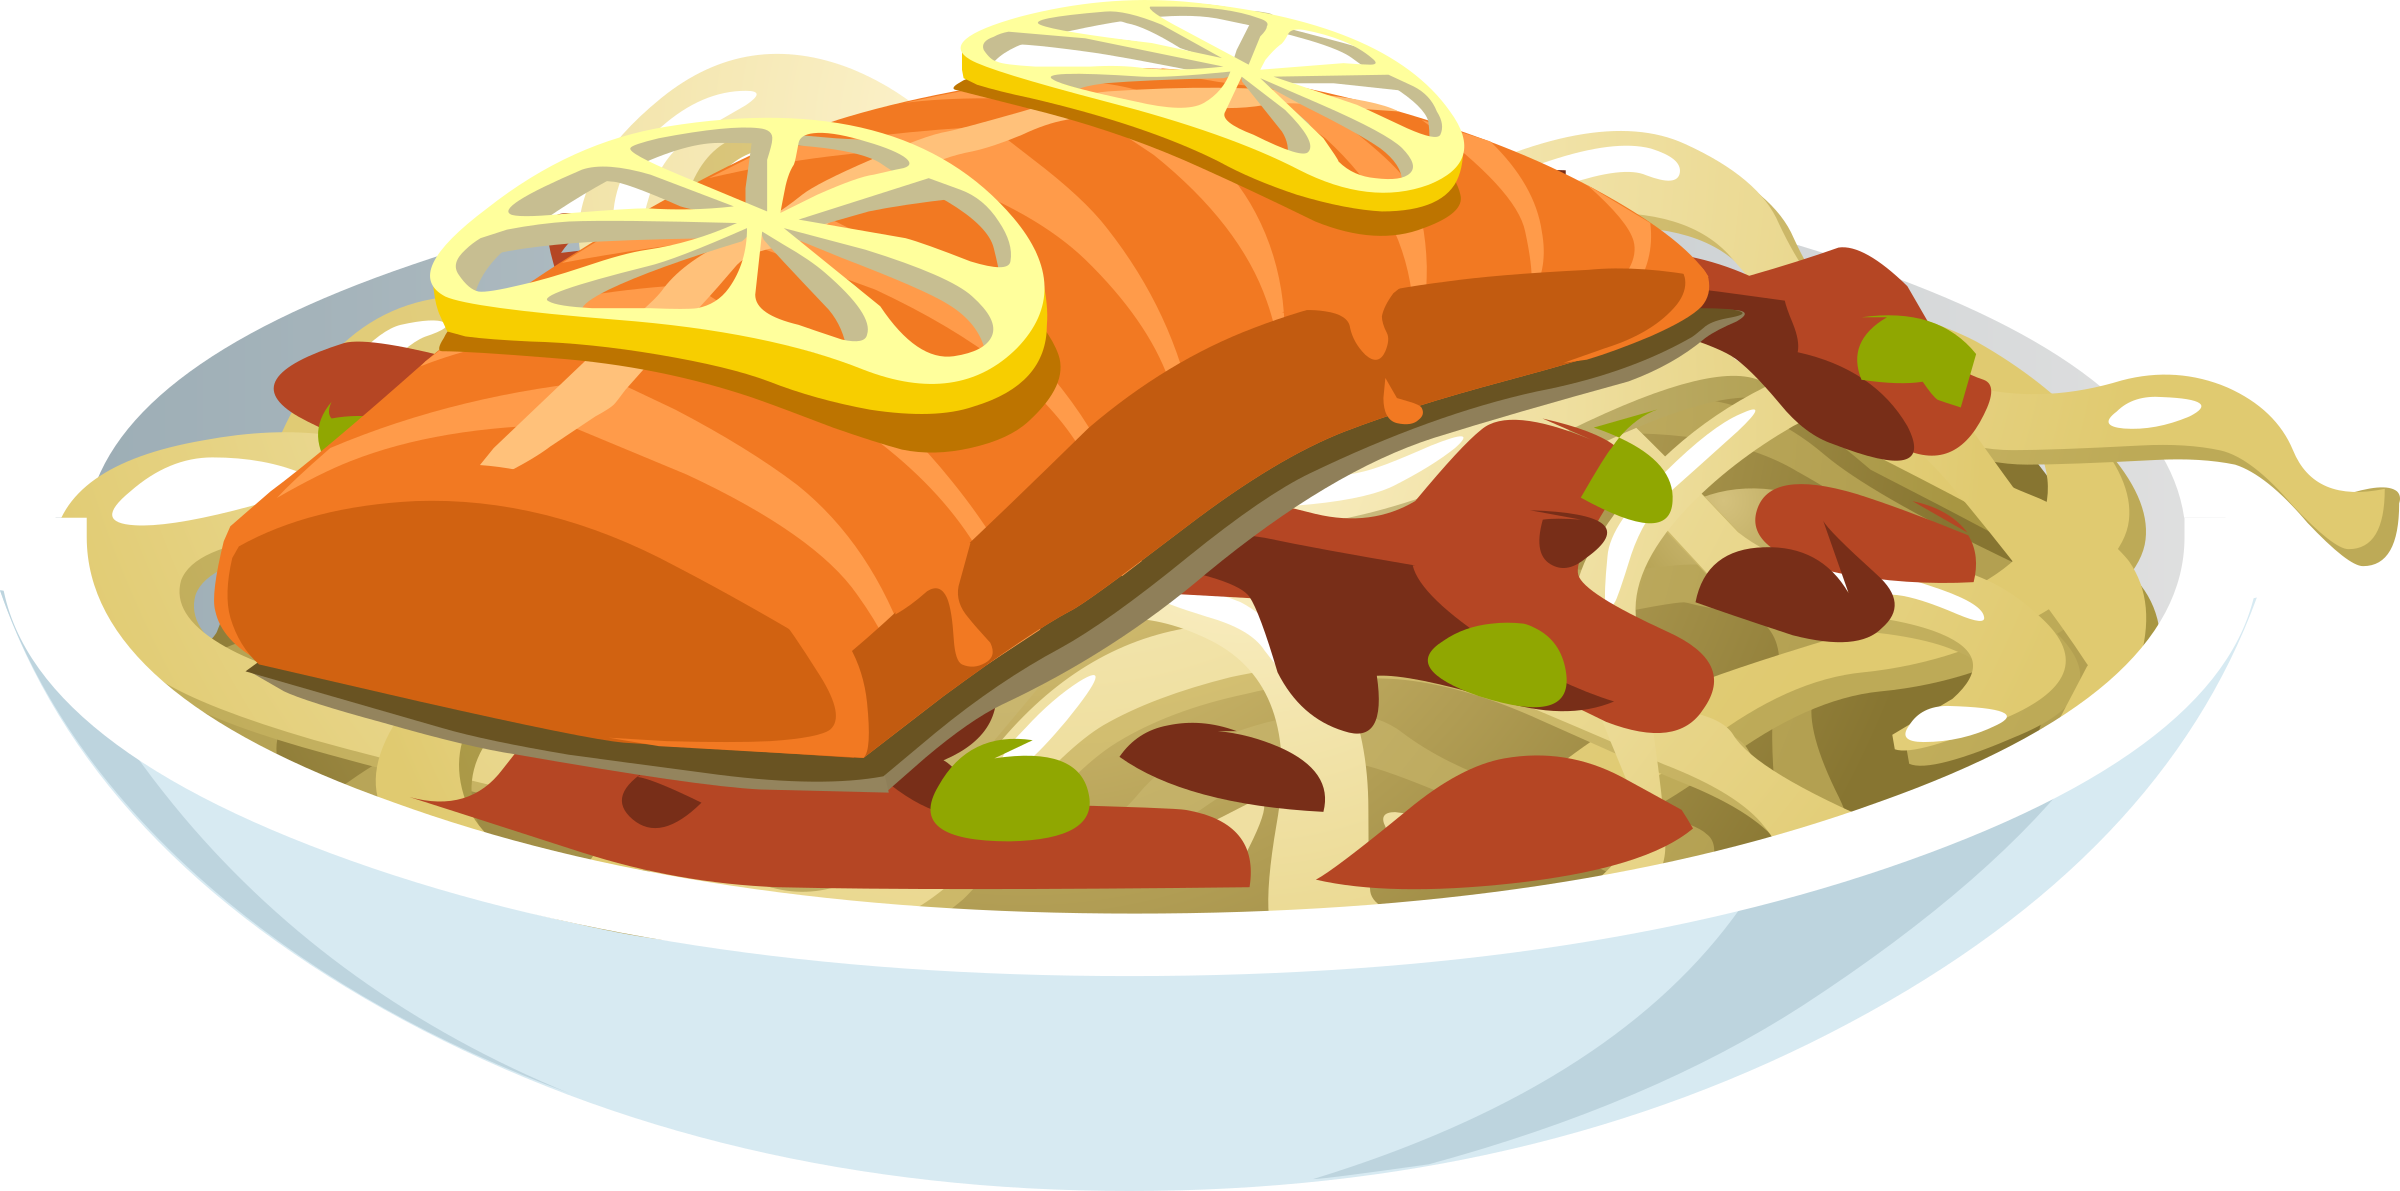 Salmon clipart blue food. Jaella icons png free